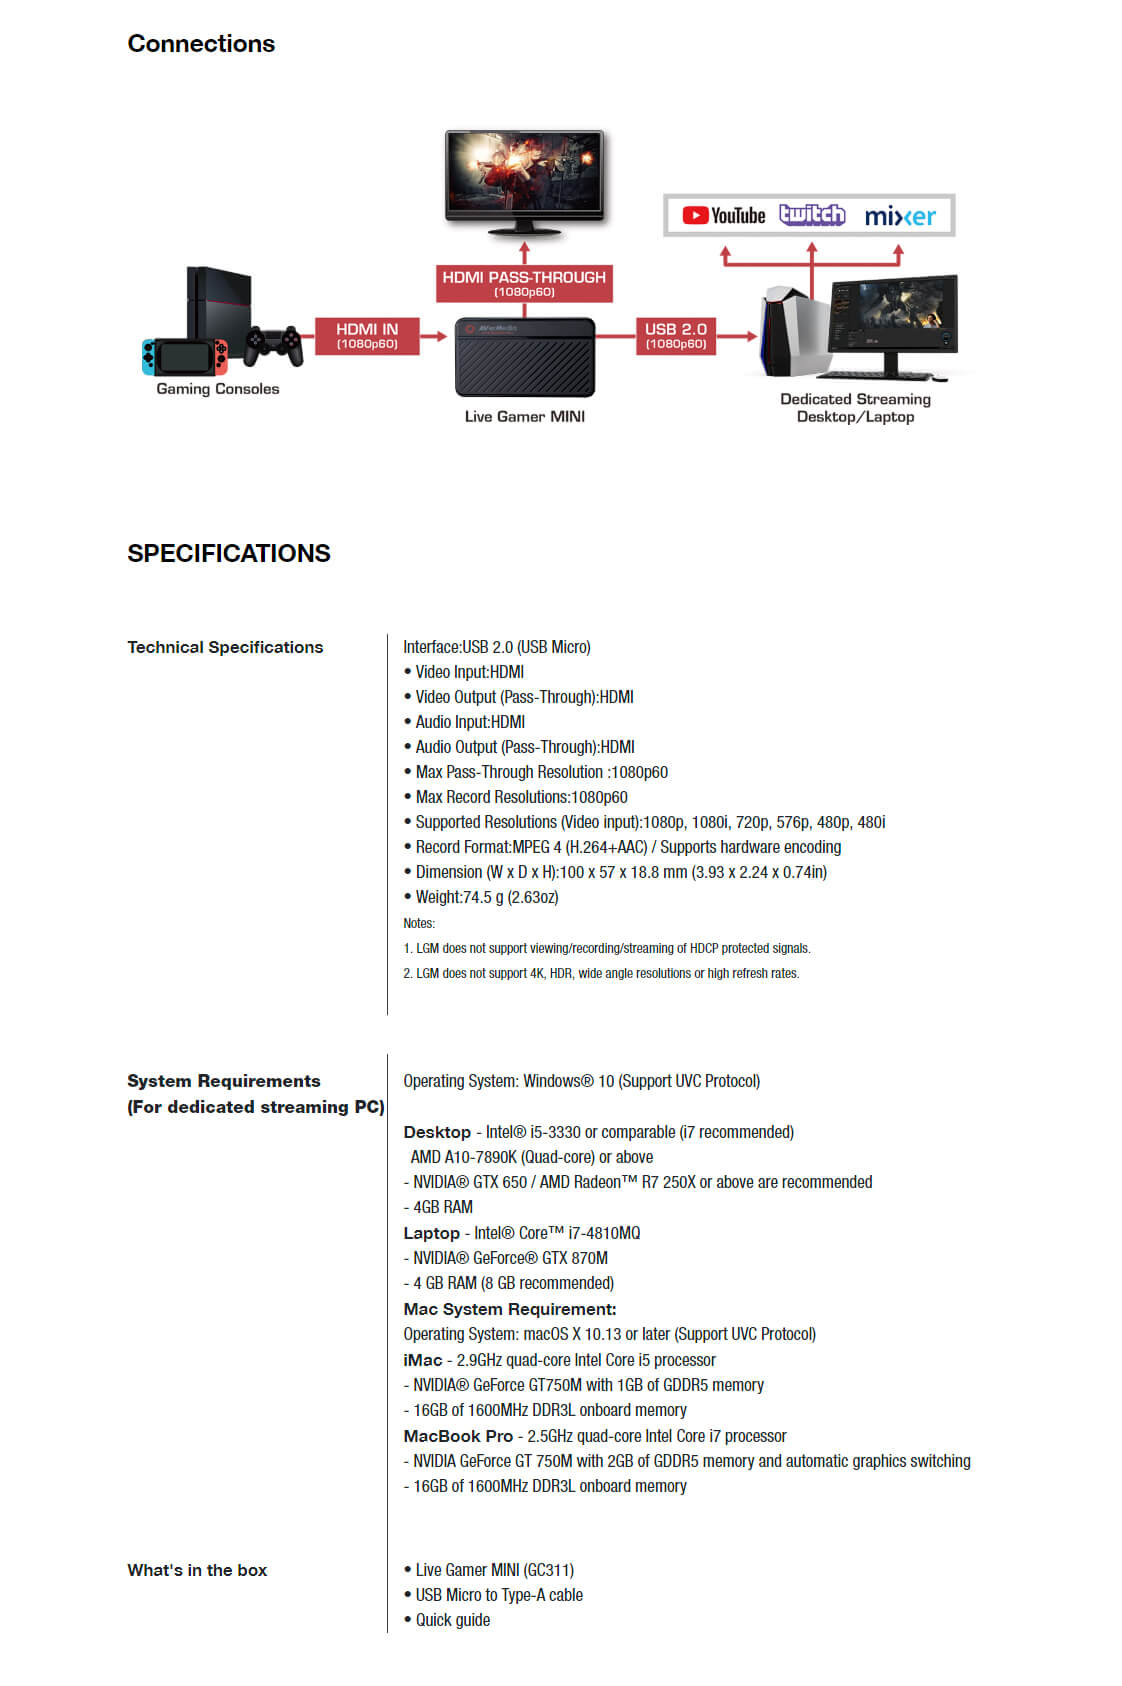 A large marketing image providing additional information about the product AverMedia GC311 Live Gamer Mini Capture Device - Additional alt info not provided